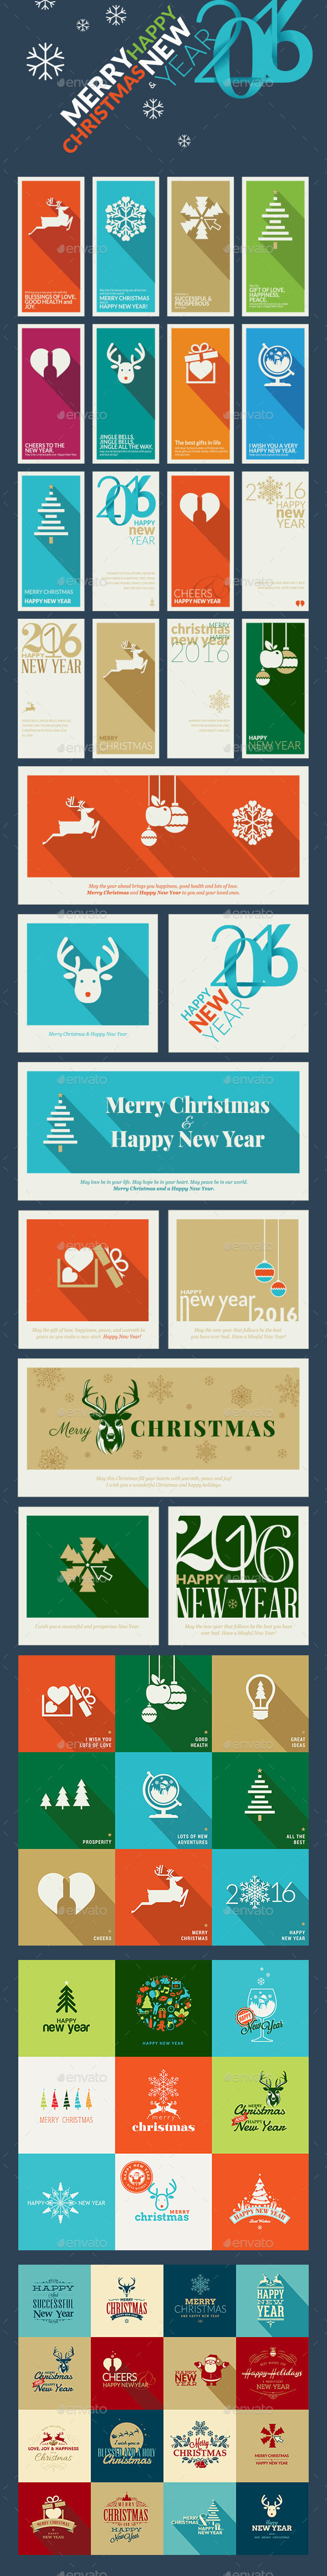 Flat Design Christmas and New Year Greeting Cards - Christmas Seasons/Holidays